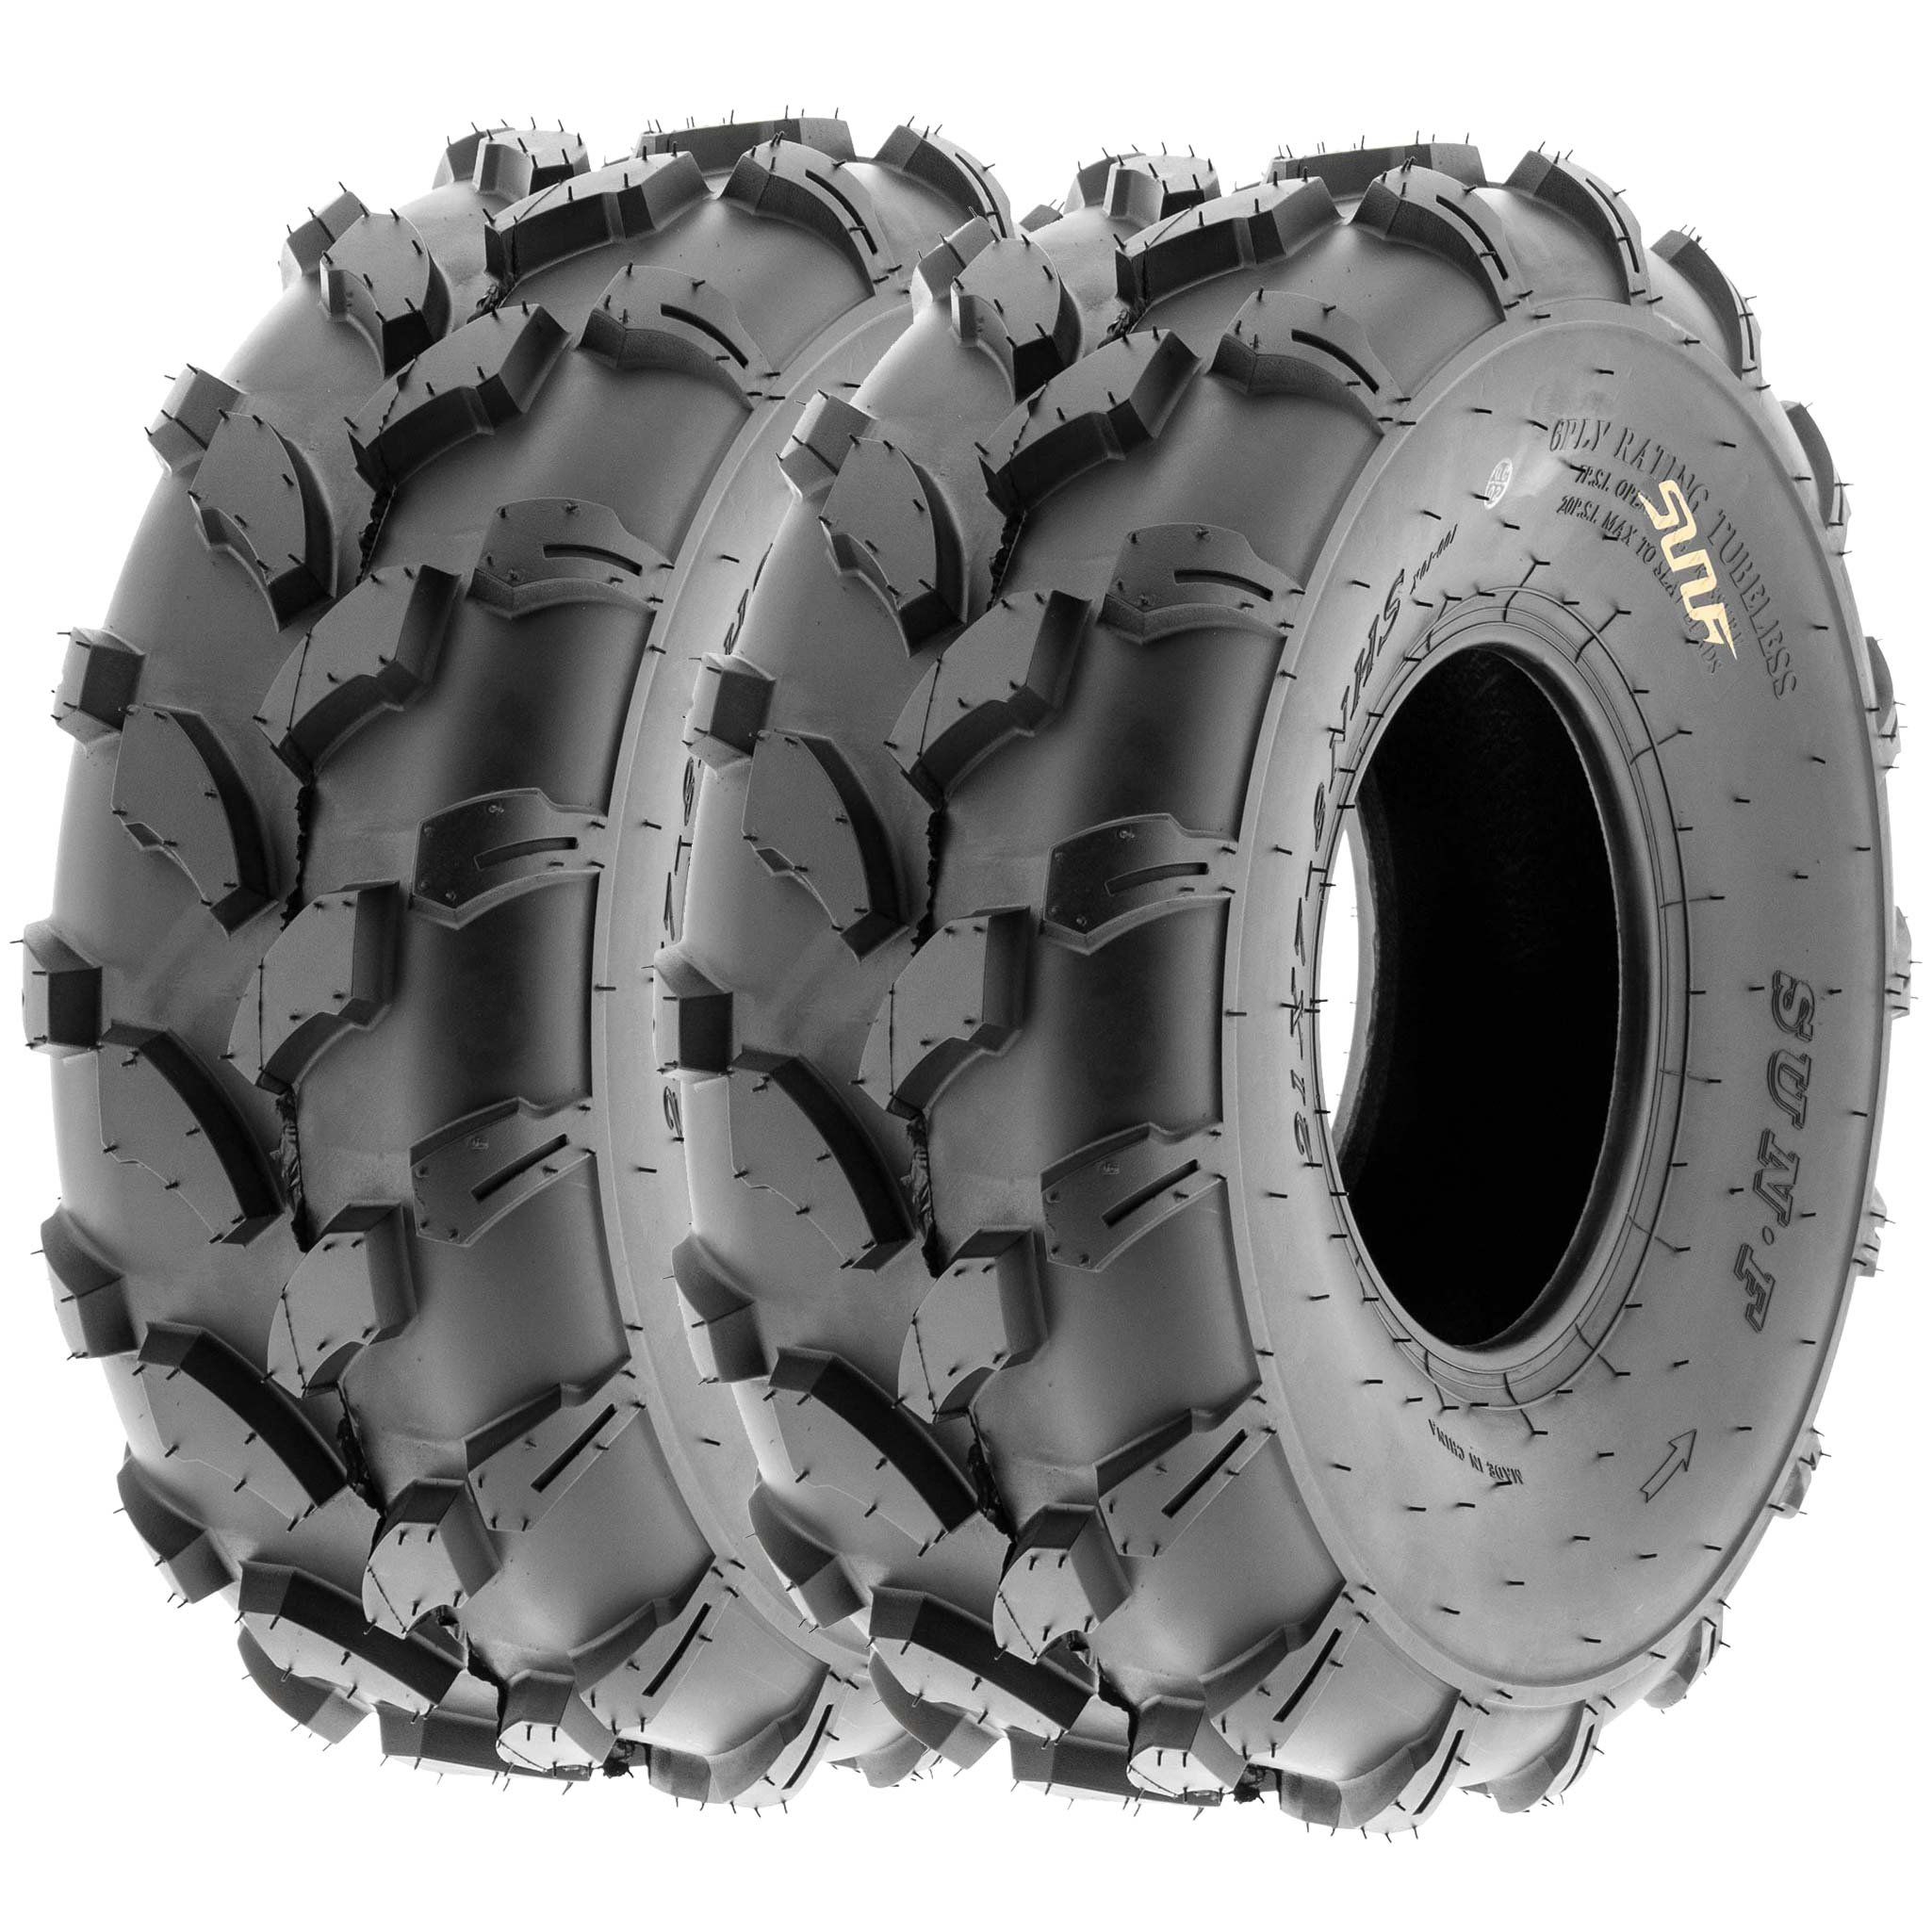 SunF 19x7-8 19x7x8 ATV UTV All Terrain Trail Replacement 6 PR Tubeless Tires A003, [Set of 2] by SUNF (Image #1)